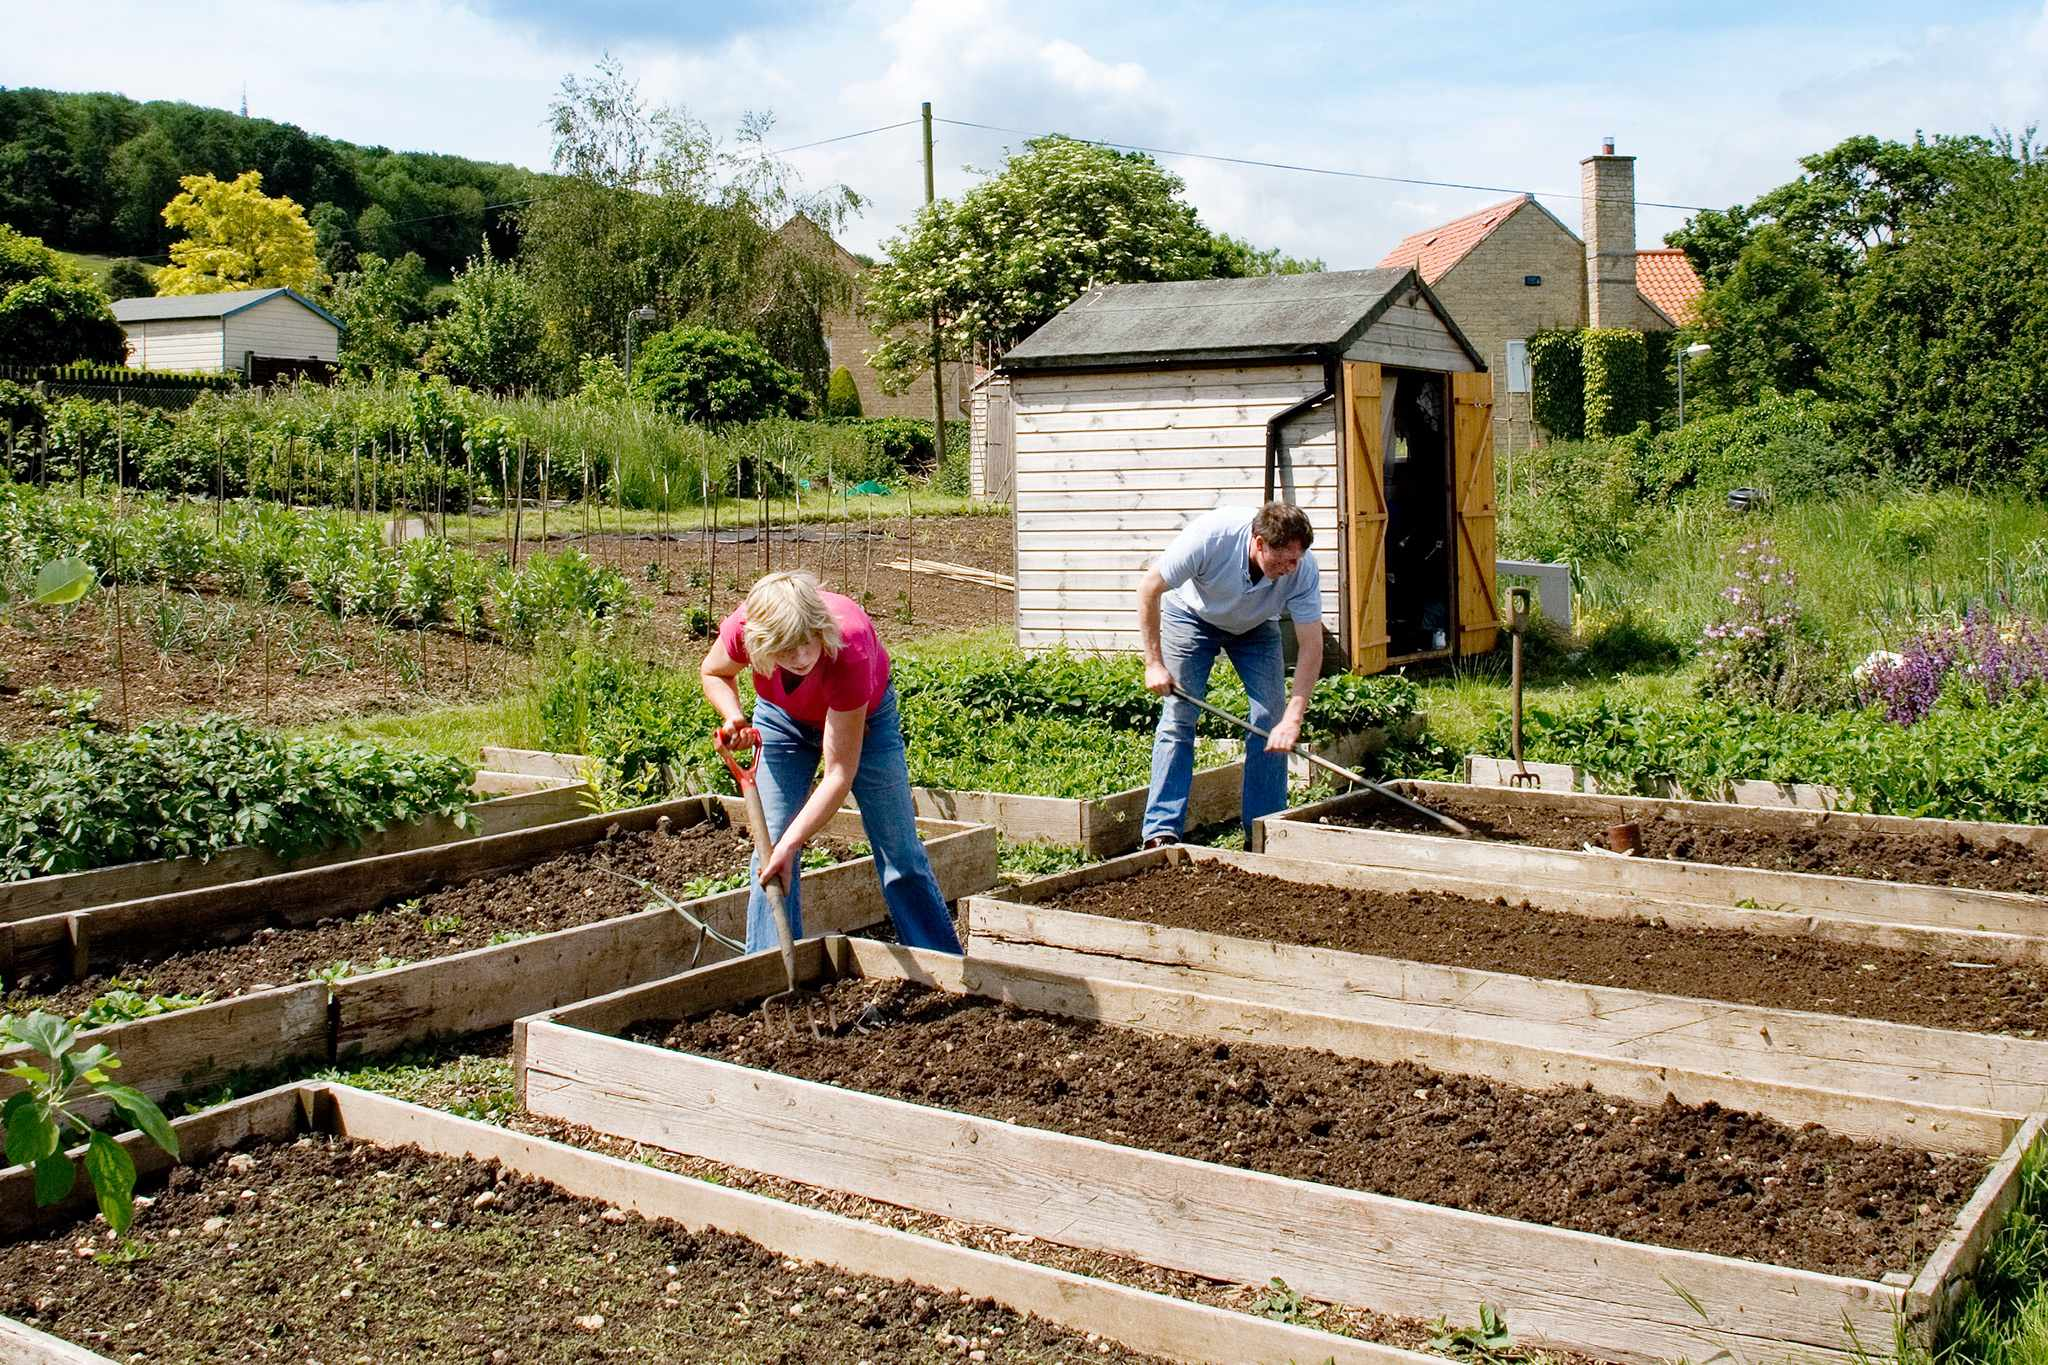 Preparing allotment beds